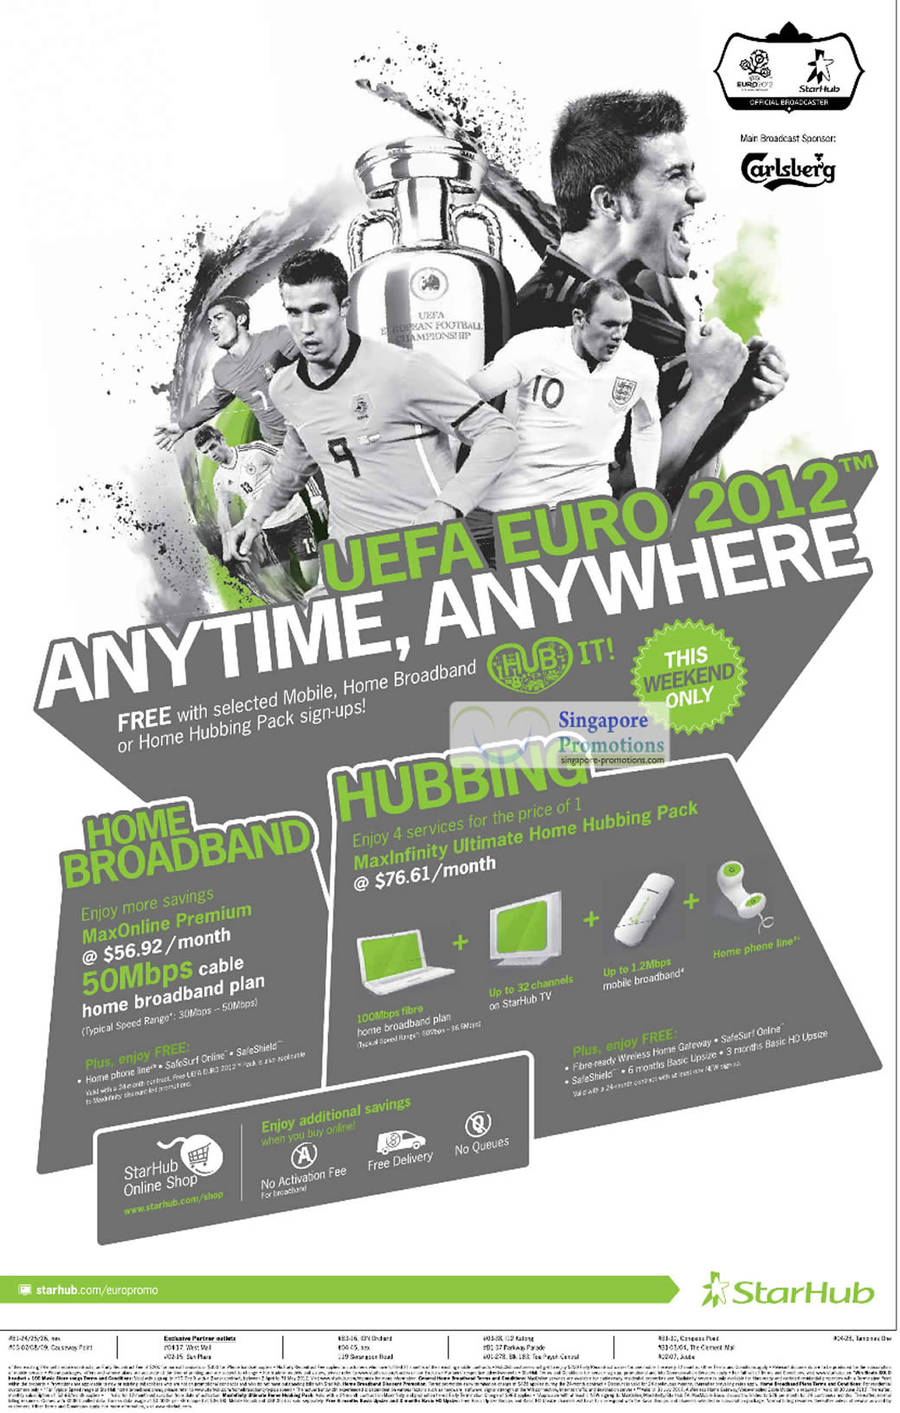 UEFA 2012 Free With Selected Mobile, Home Broadband, Hubbing Pack